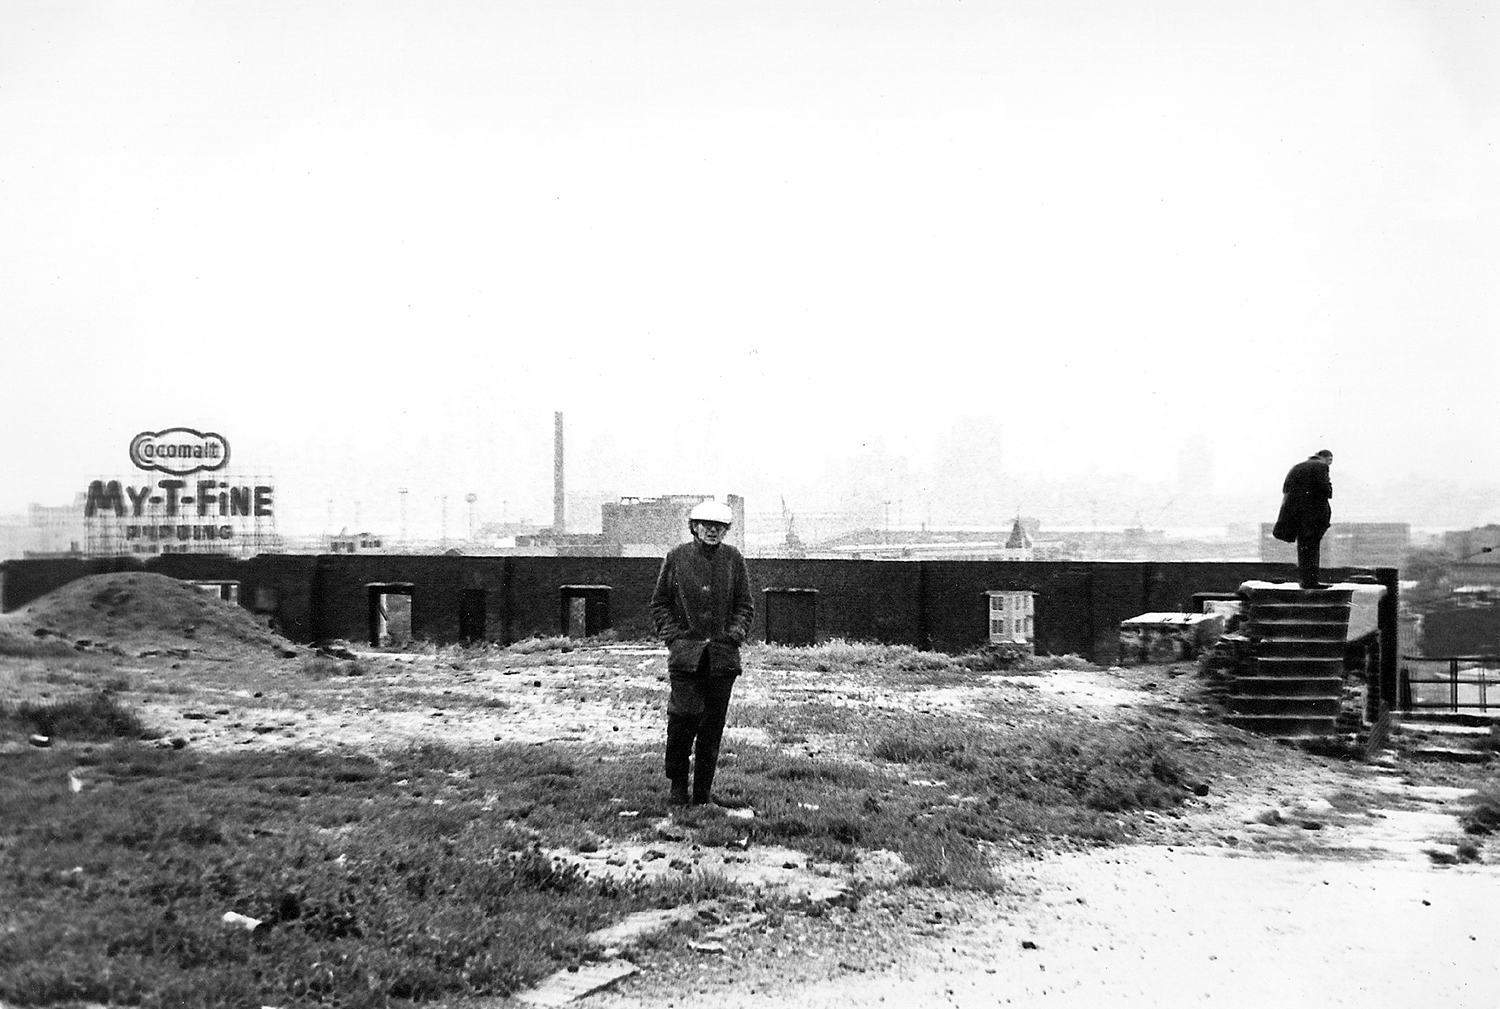 secunda-city-june-1972-marchisano.png